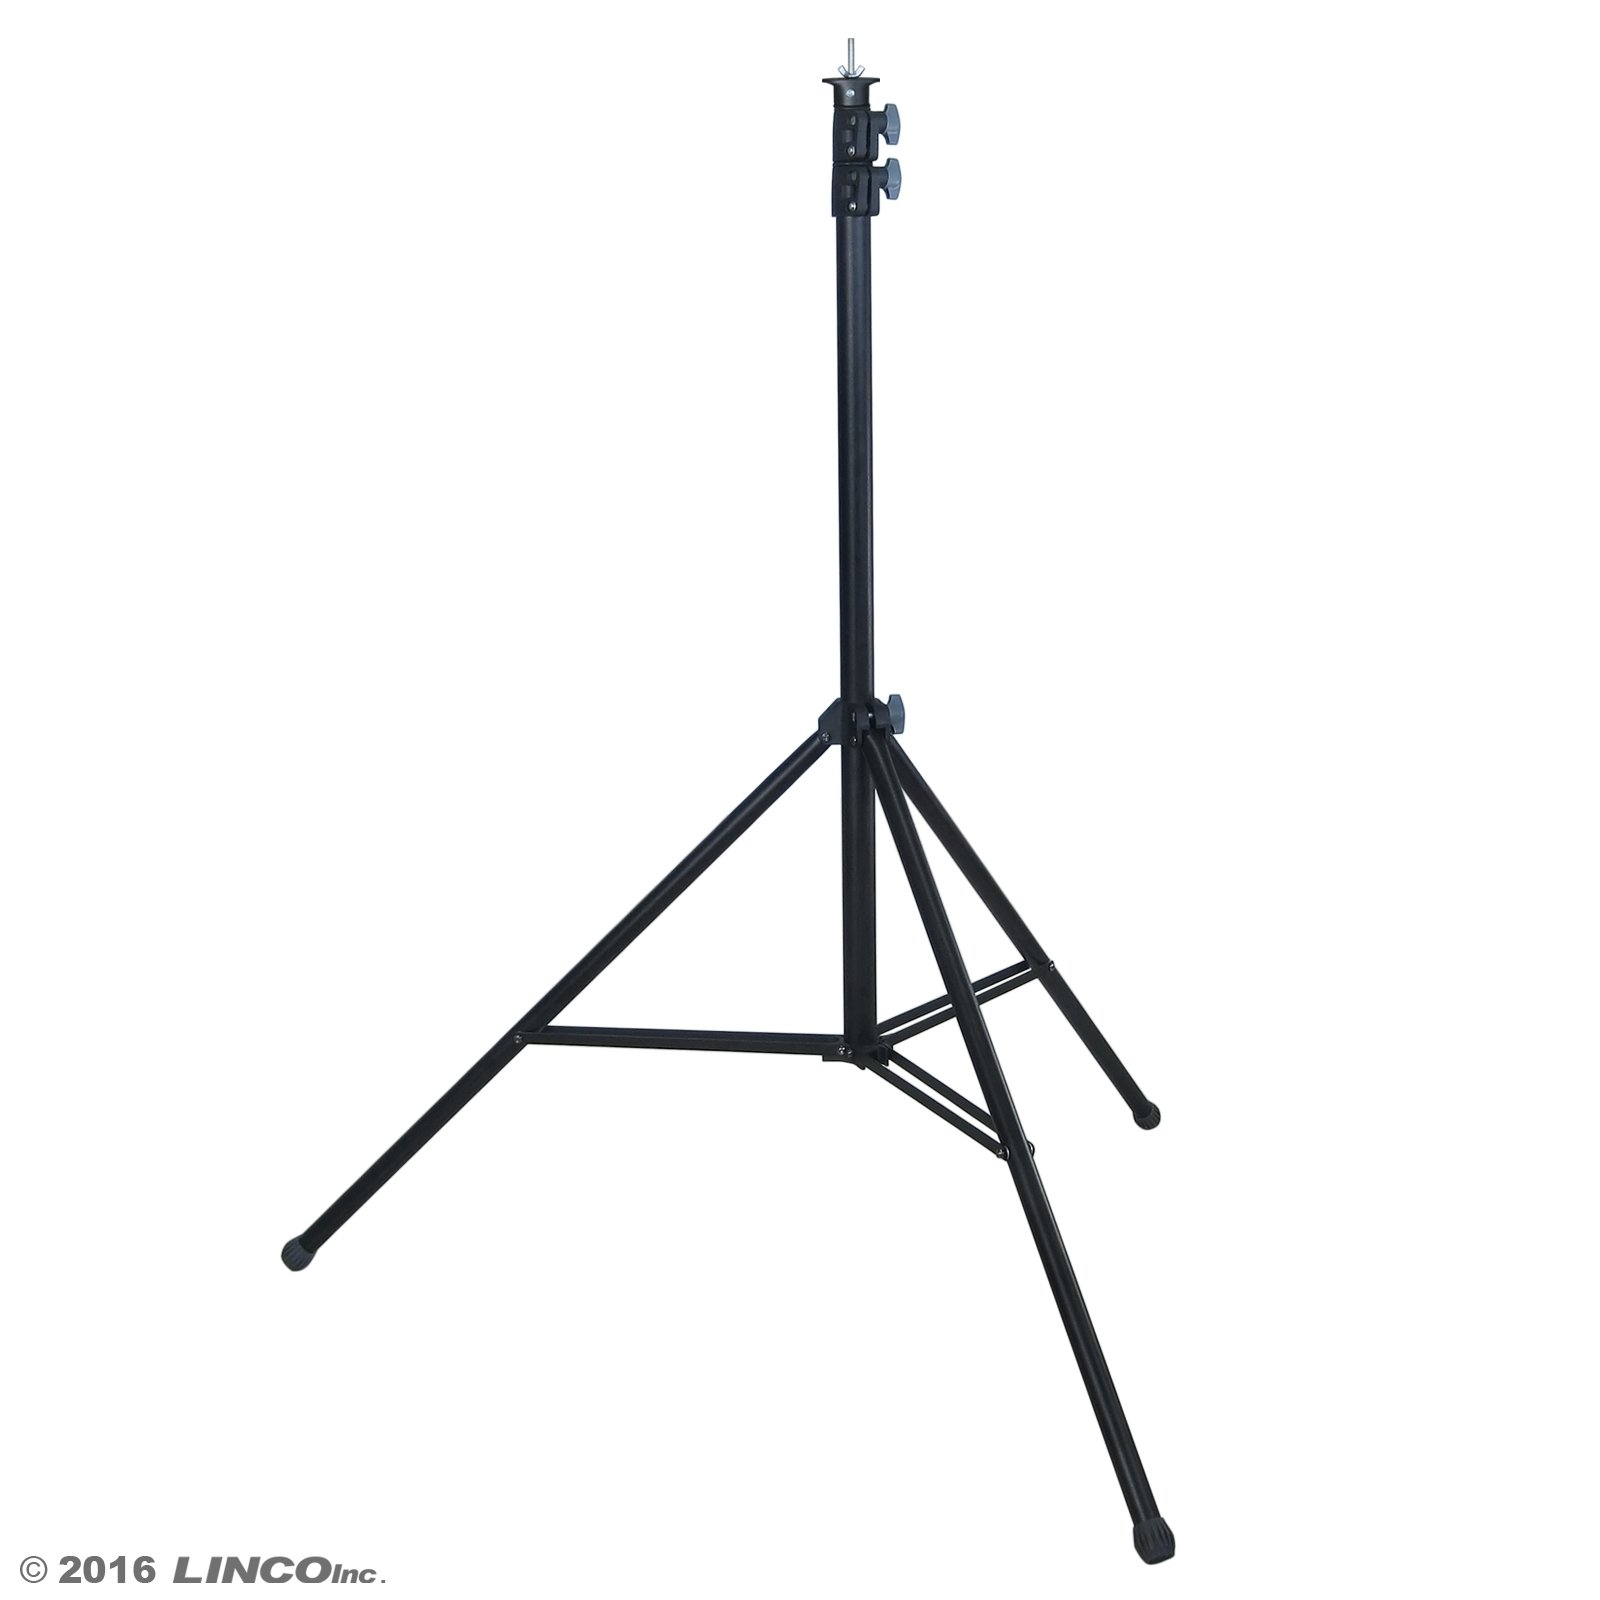 Linco Lincostore Photo Backdrop Stand 9x10 ft Heavy Duty Photography Background Support System Kit 4164 by Linco (Image #3)